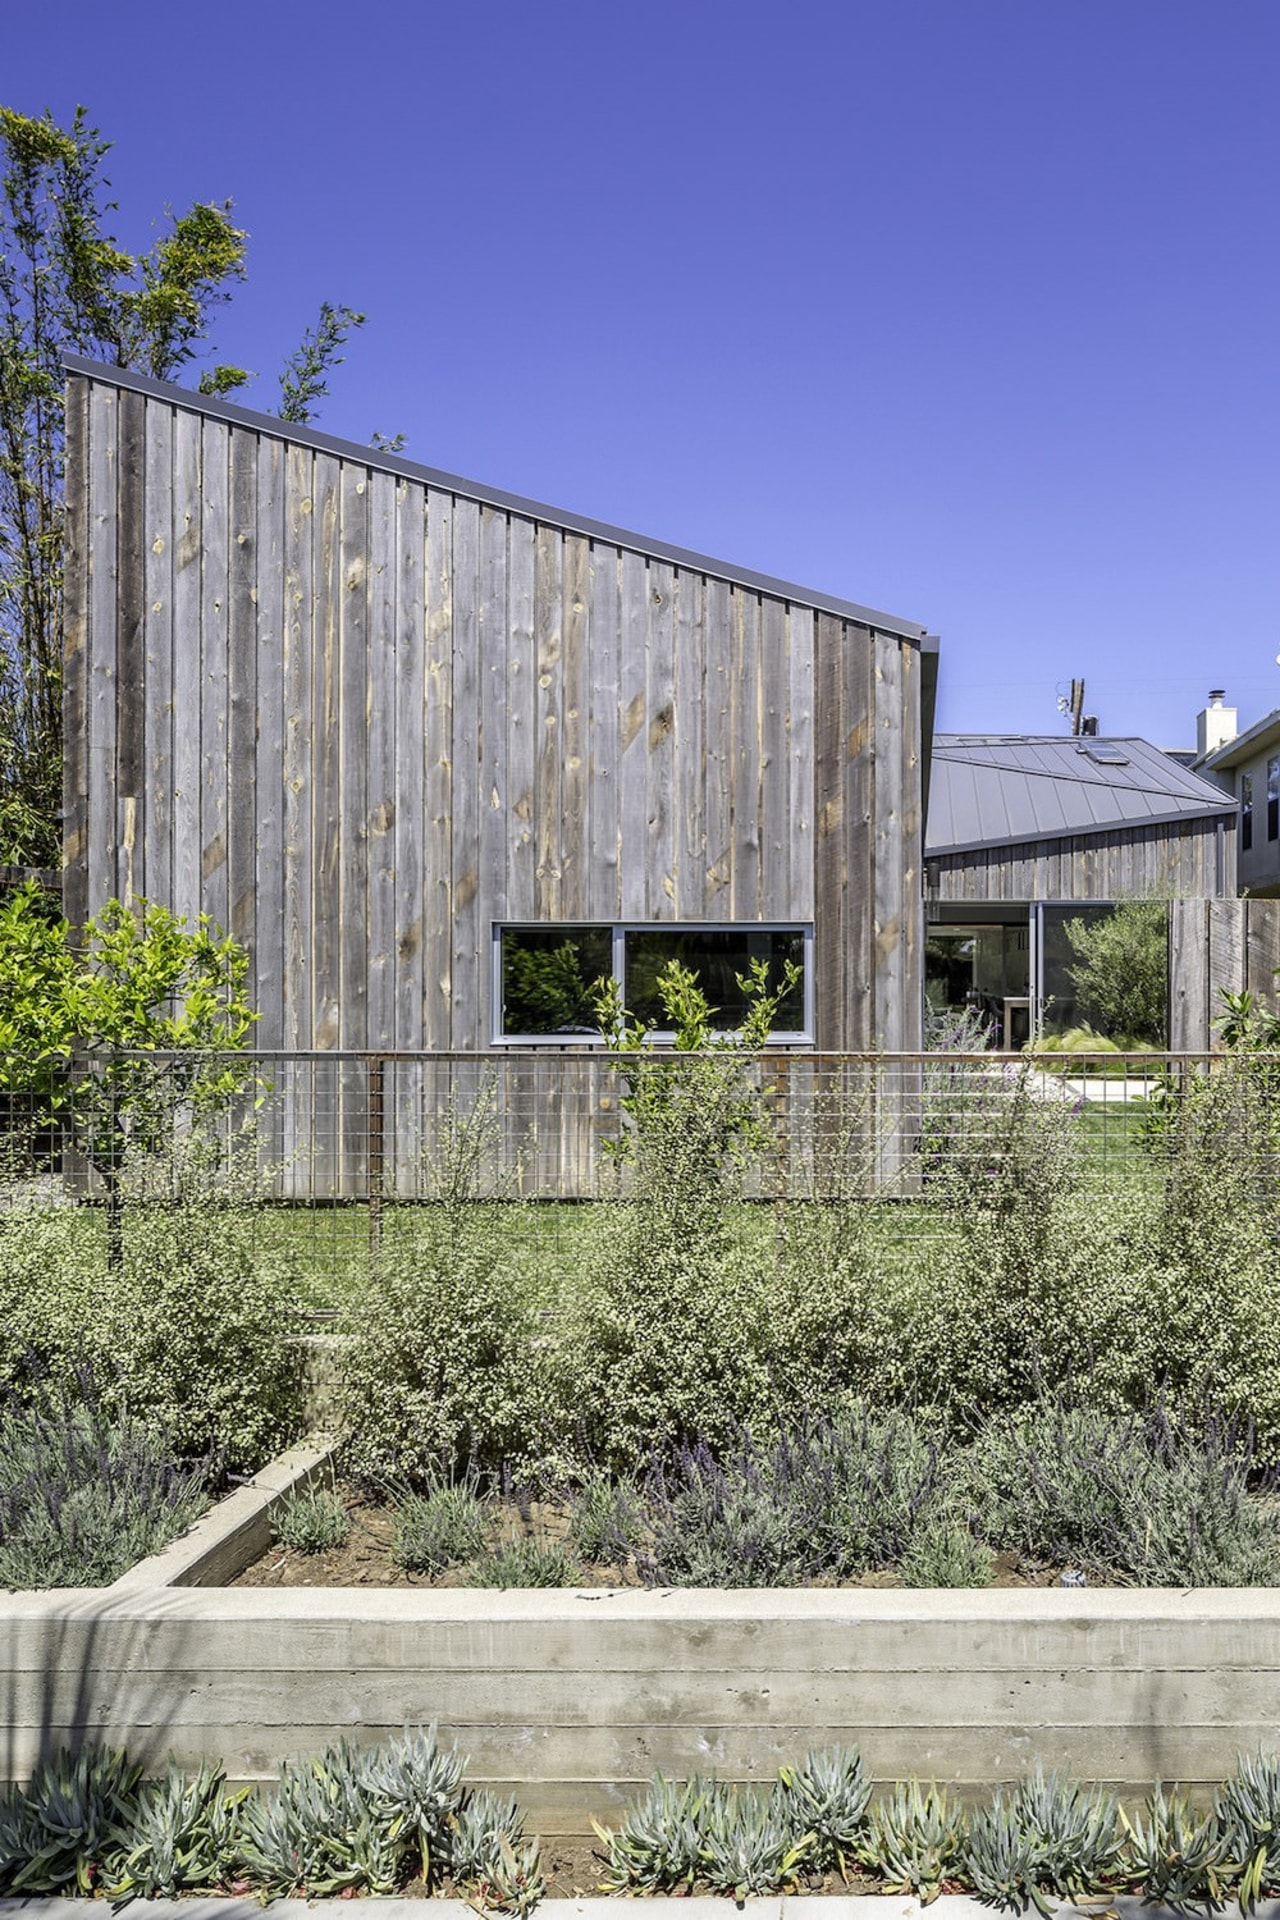 Rustic weatherboards make up the siding on this architecture, building, facade, house, real estate, residential area, gray, blue